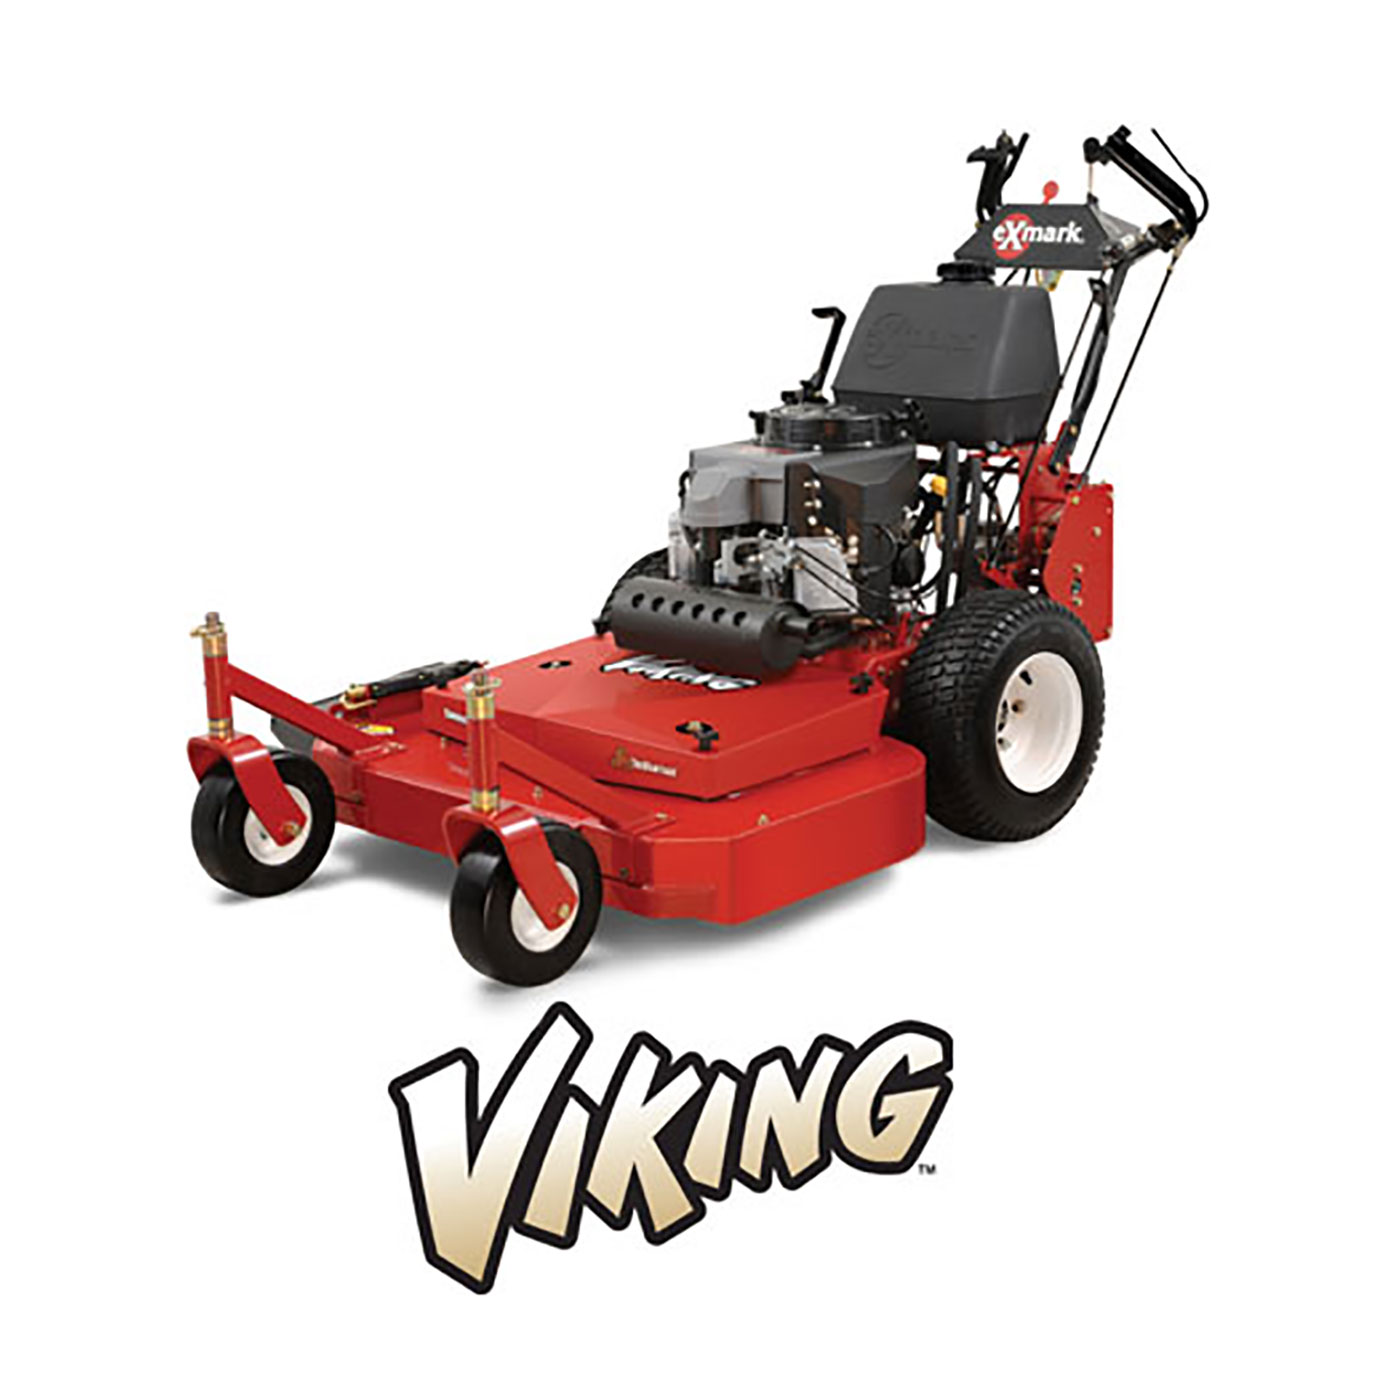 Exmark Viking 36 inch Hydrostatic Mower